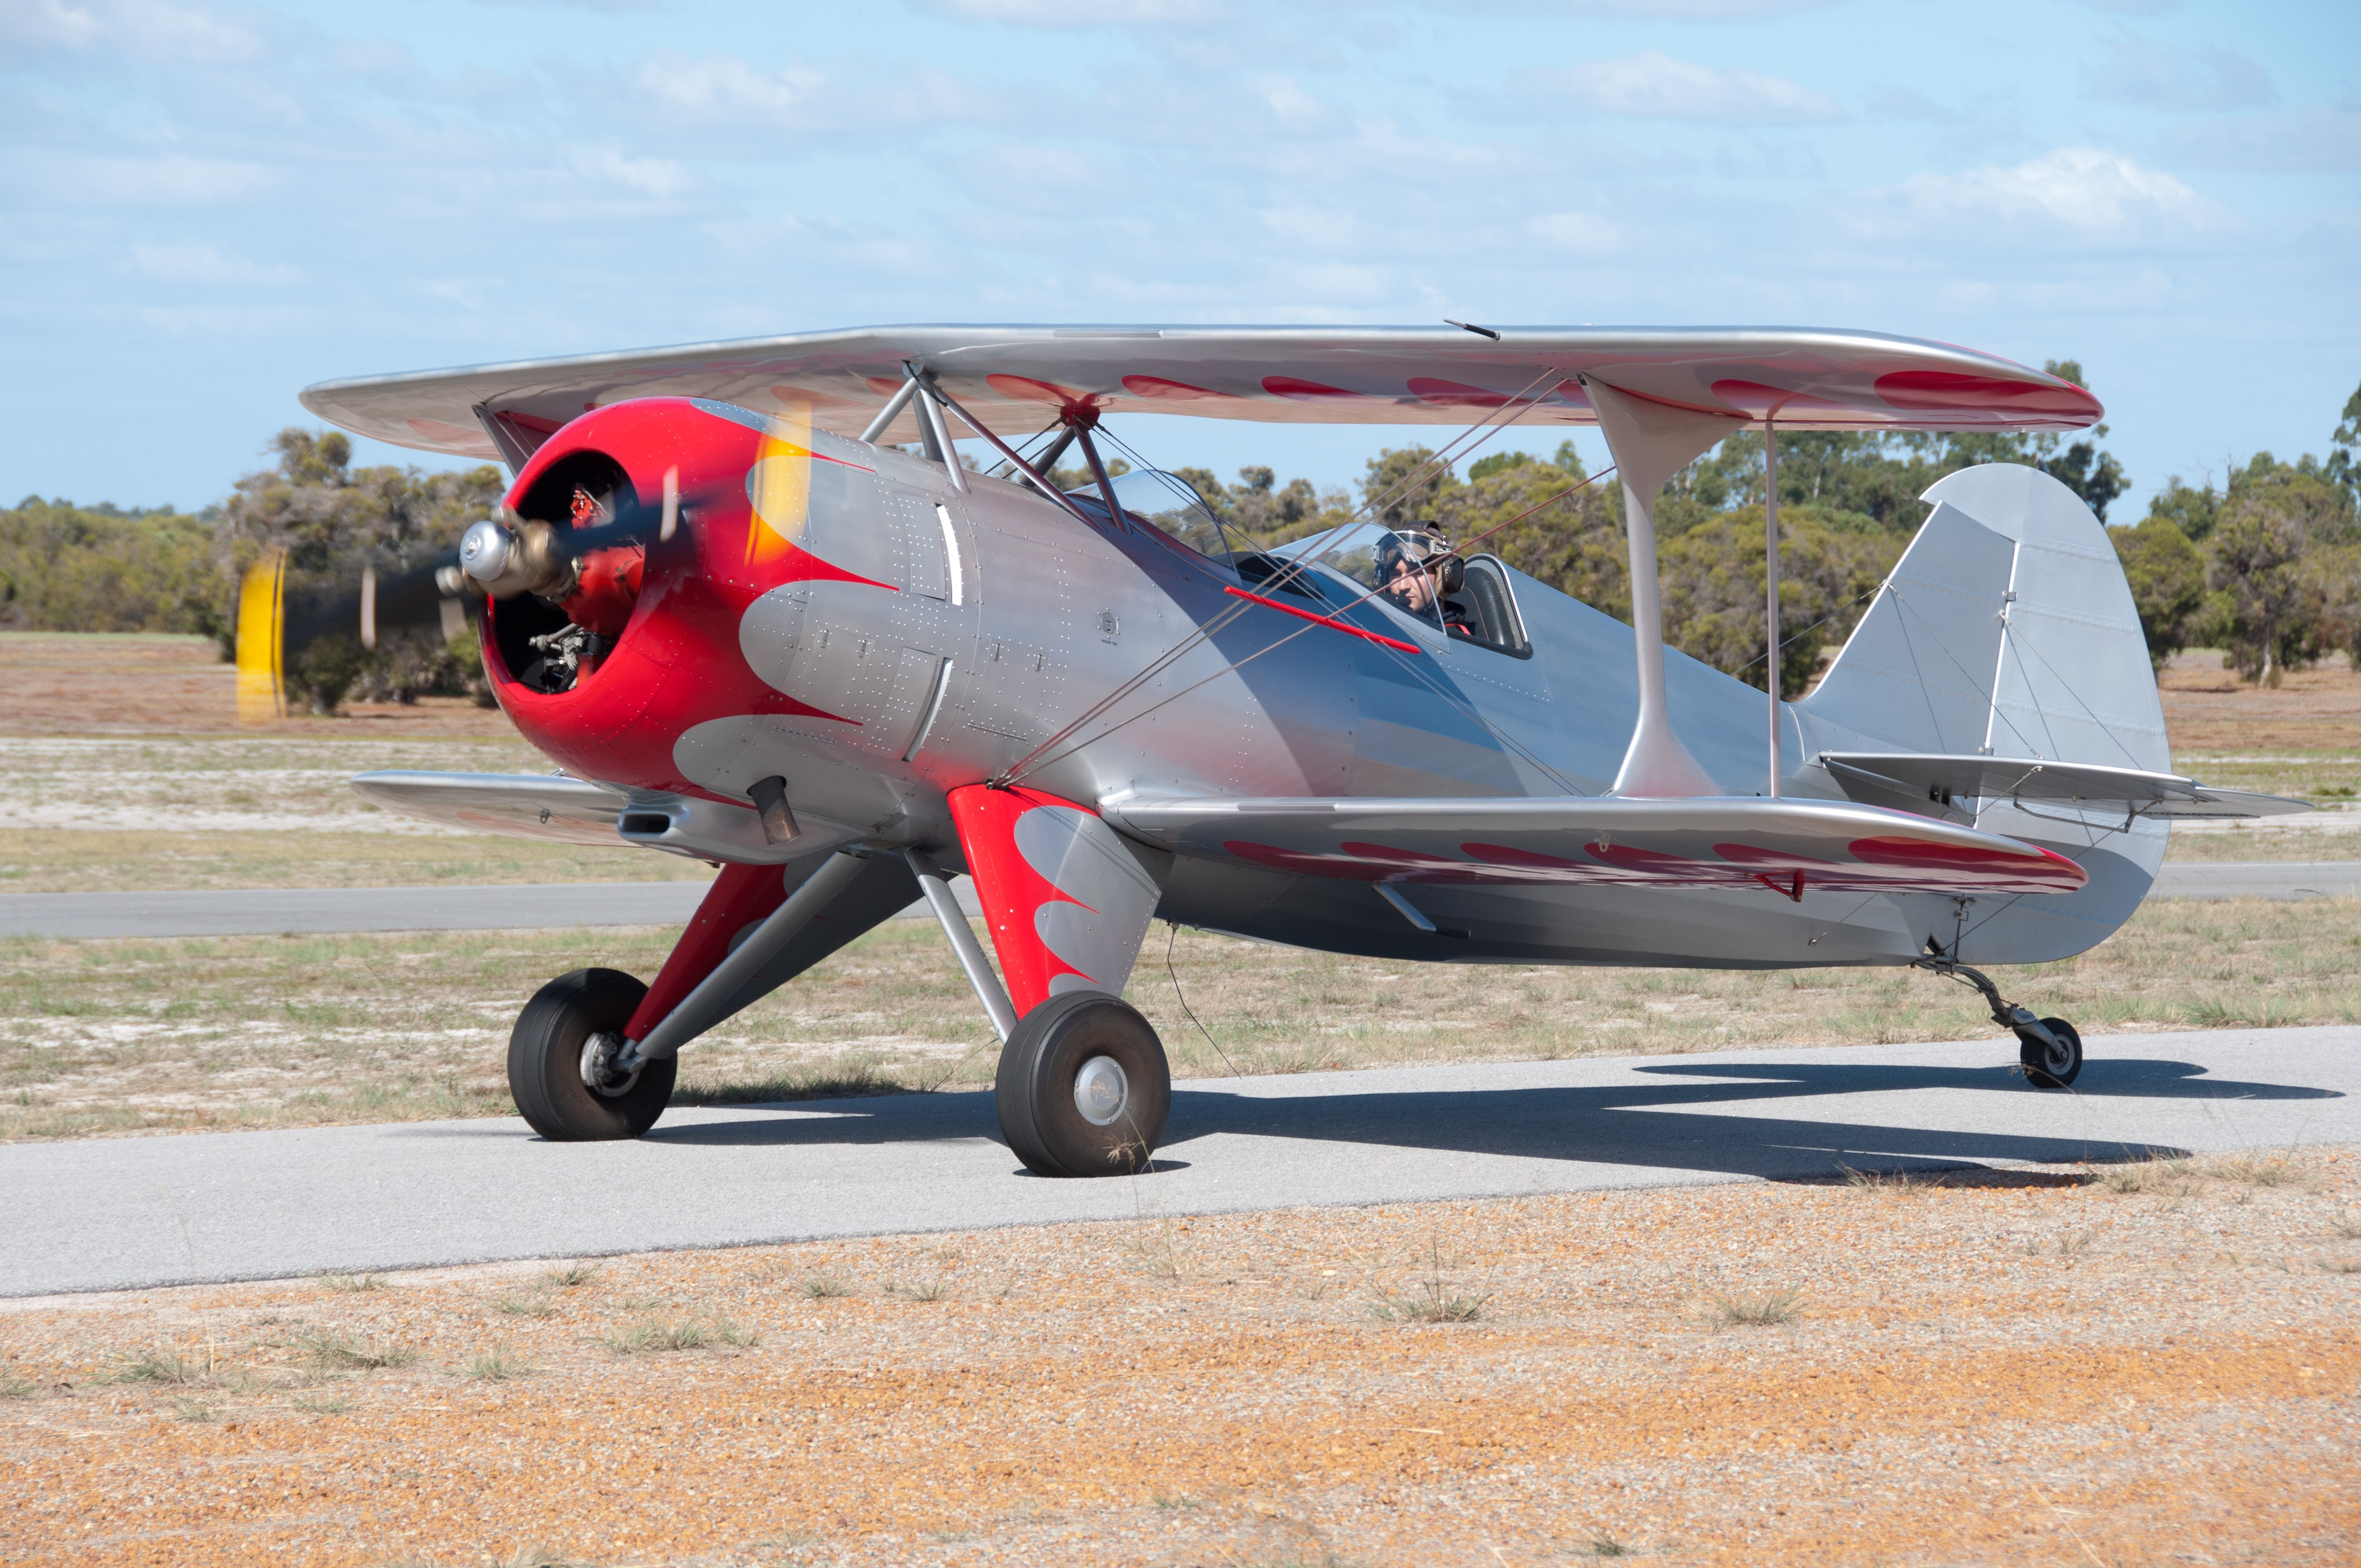 Serpentine SABC SAAA fly in aviation ufc uni flying club jandakot culp special